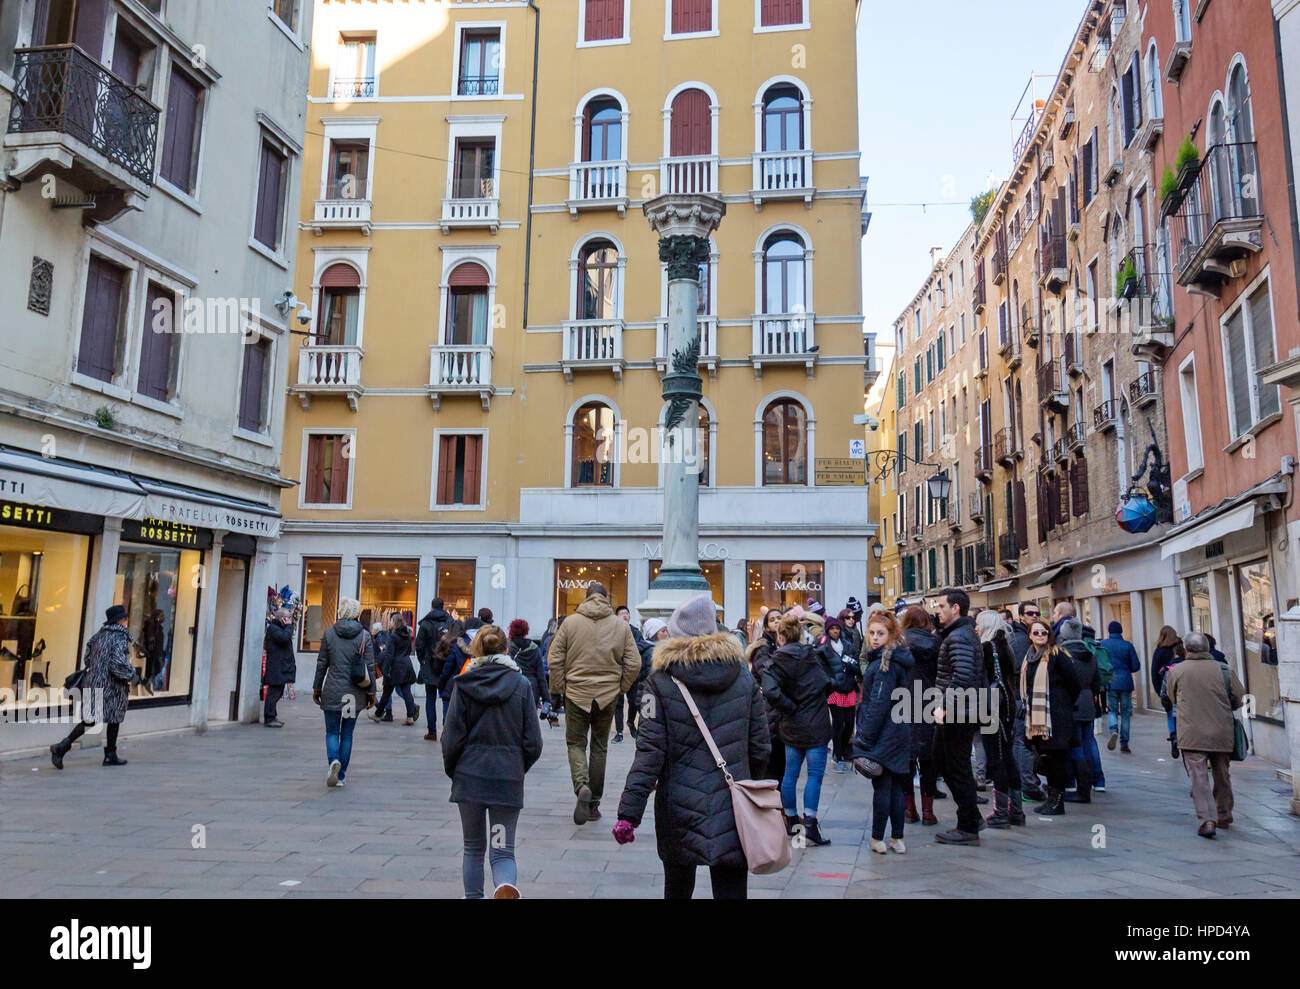 Tourists walking around in Venice, Italy. - Stock Image